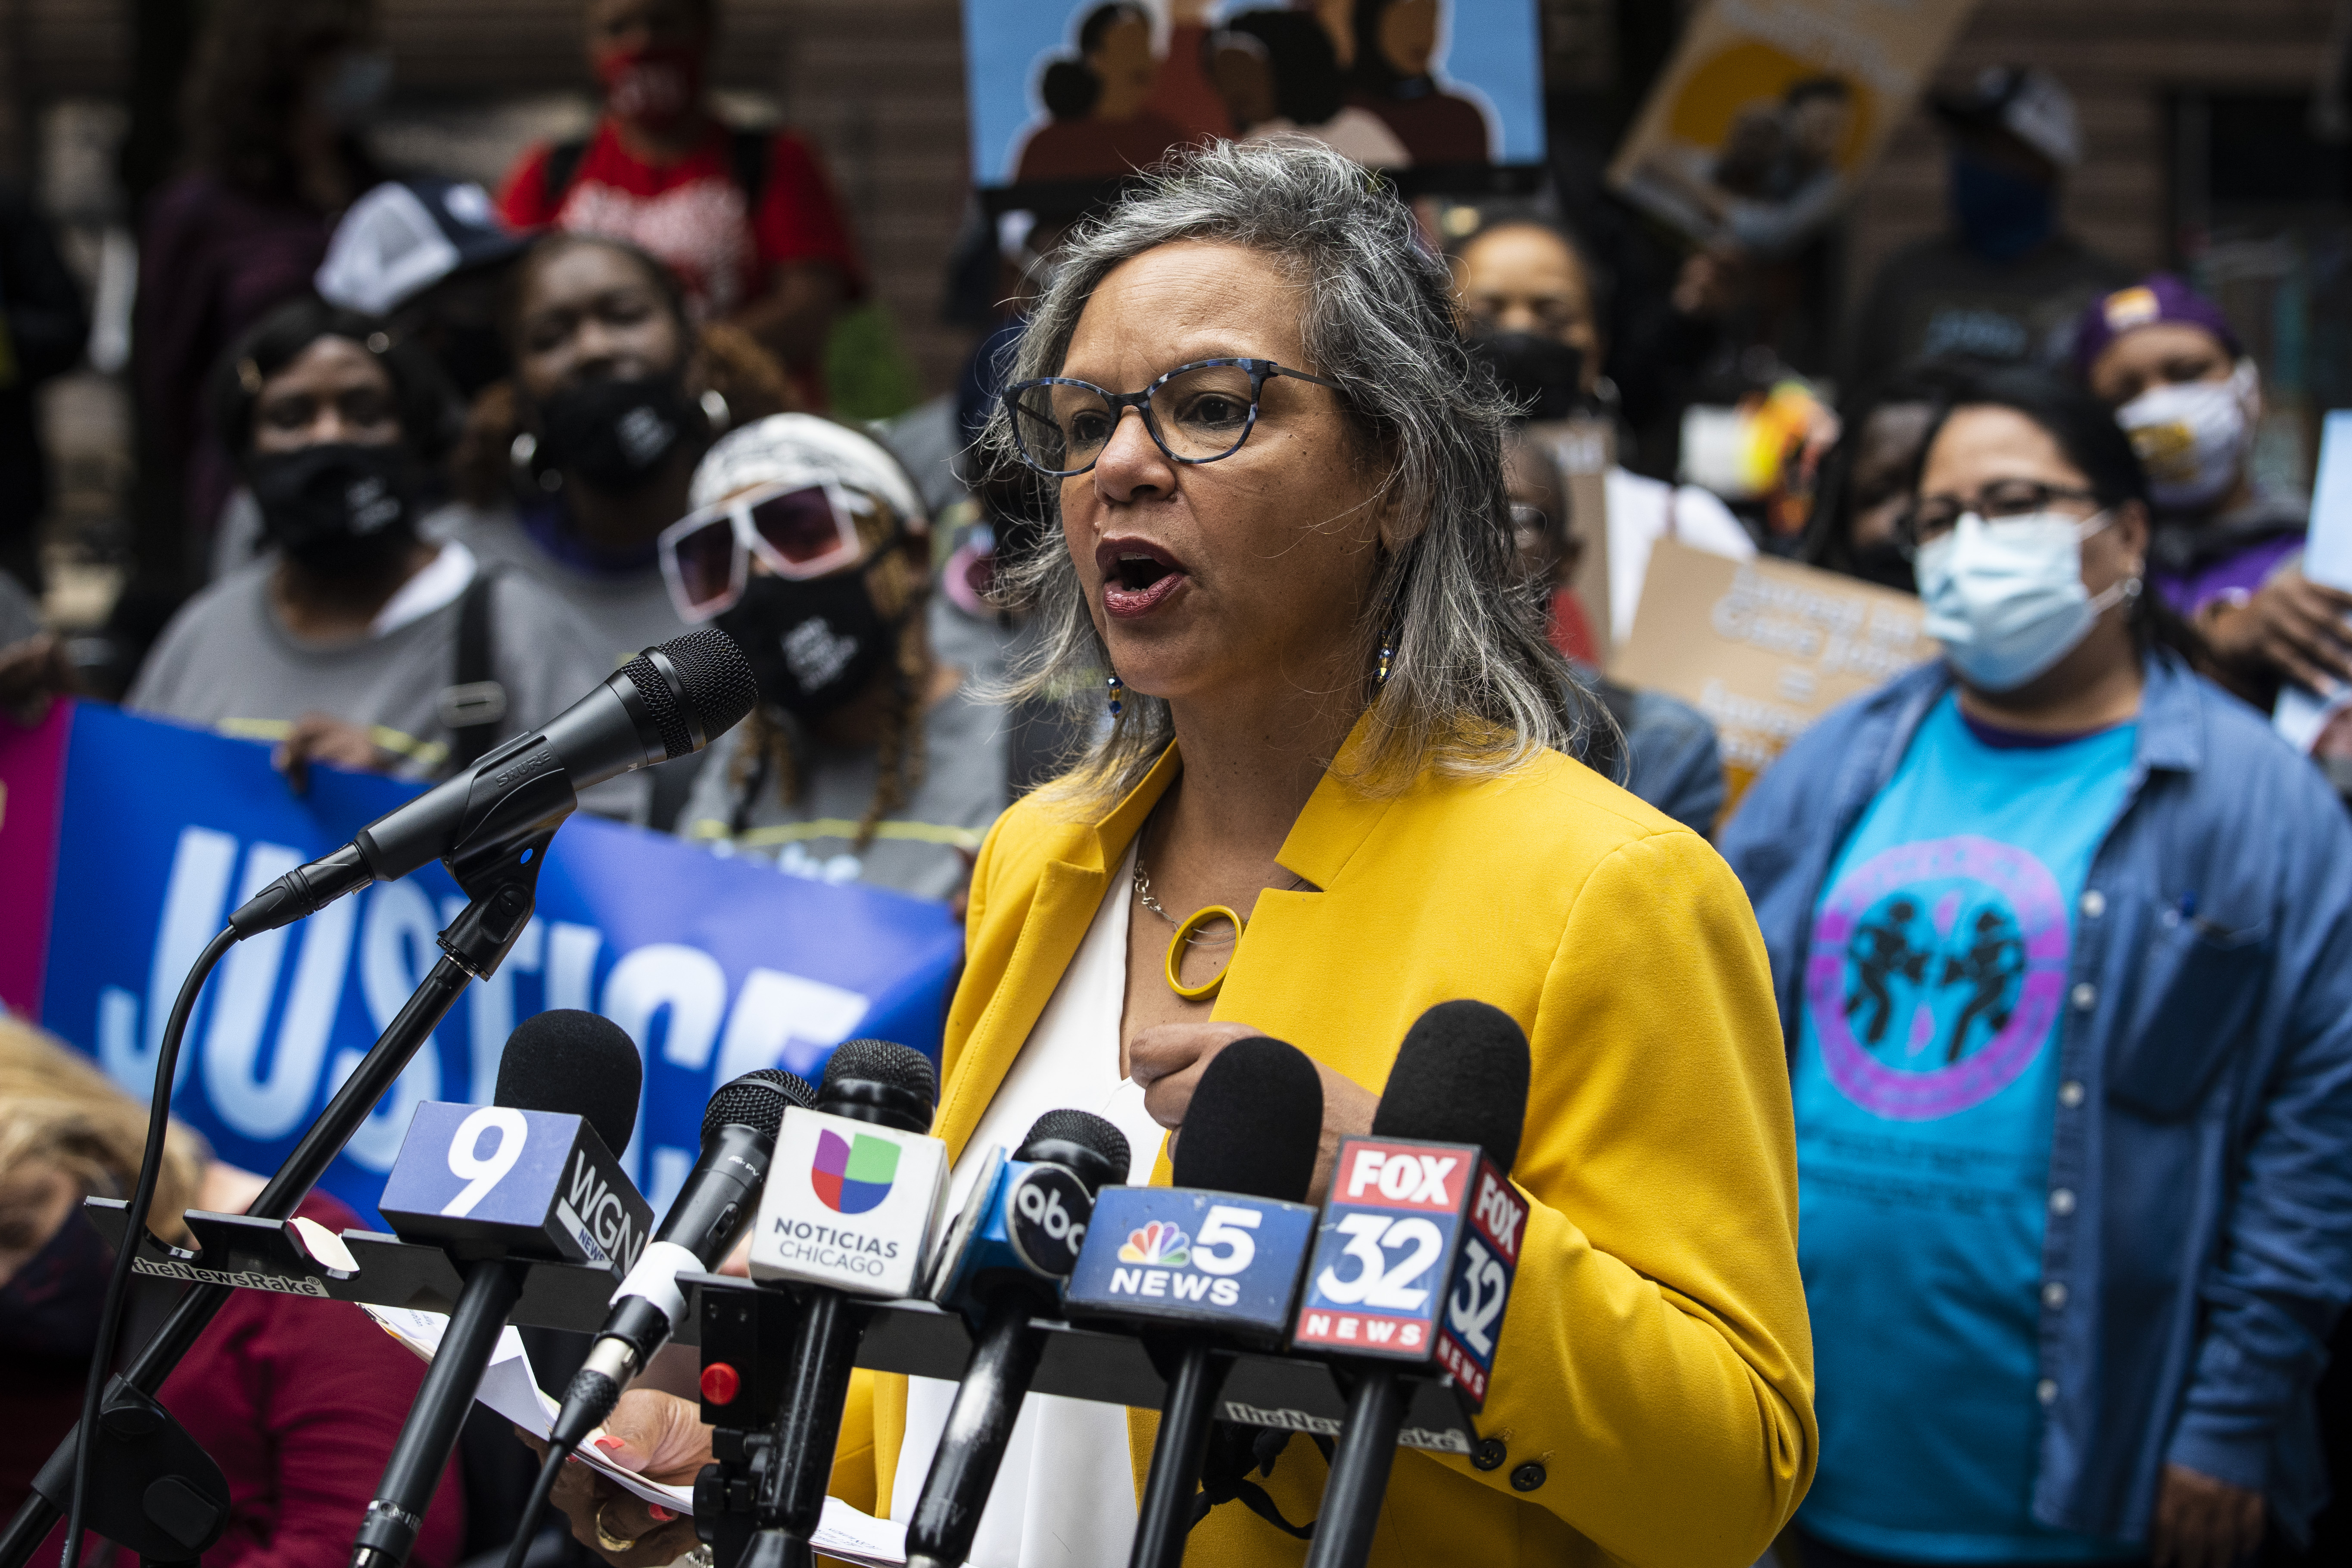 U.S. Rep. Robin Kelly speaks at a rally for home care workers represented by the Service Employees International Union rally in Federal Plaza on Tuesday.